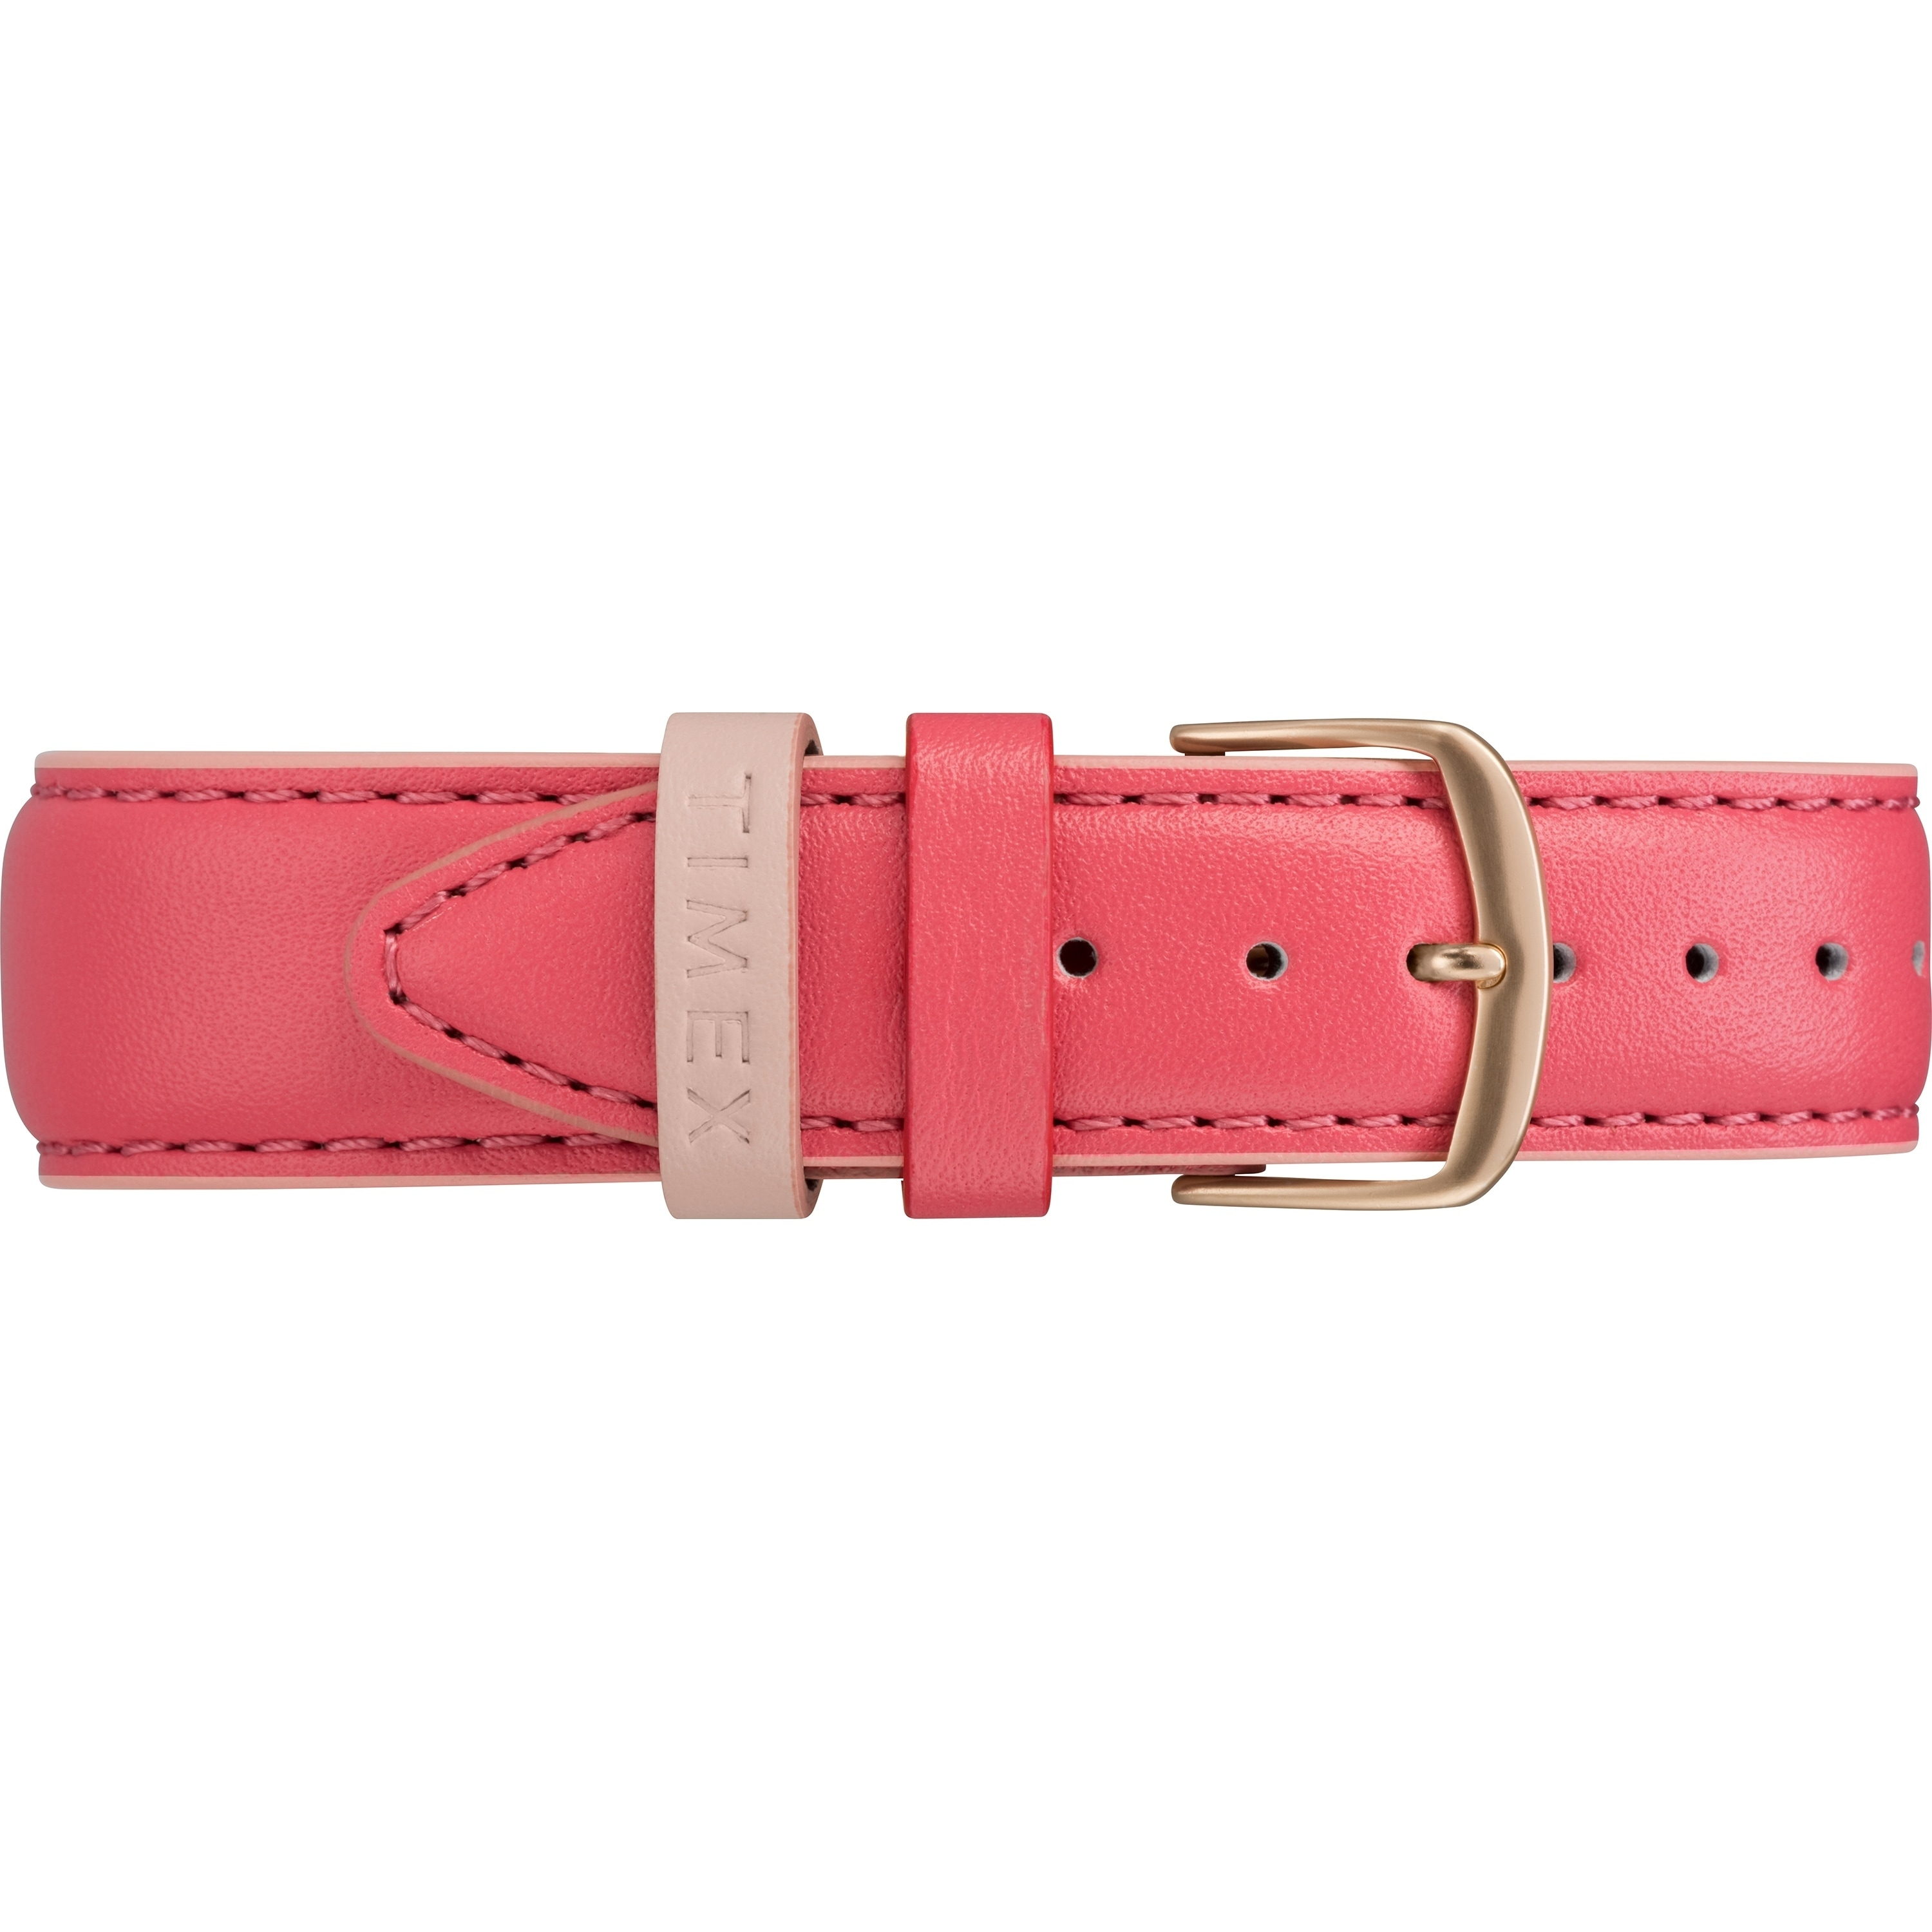 4e9234fd0 Shop Timex Women's TW2R62500 Easy Reader 38mm Pink/Rose Gold-Tone Leather  Strap Watch - Pink - Free Shipping Today - Overstock - 20598610